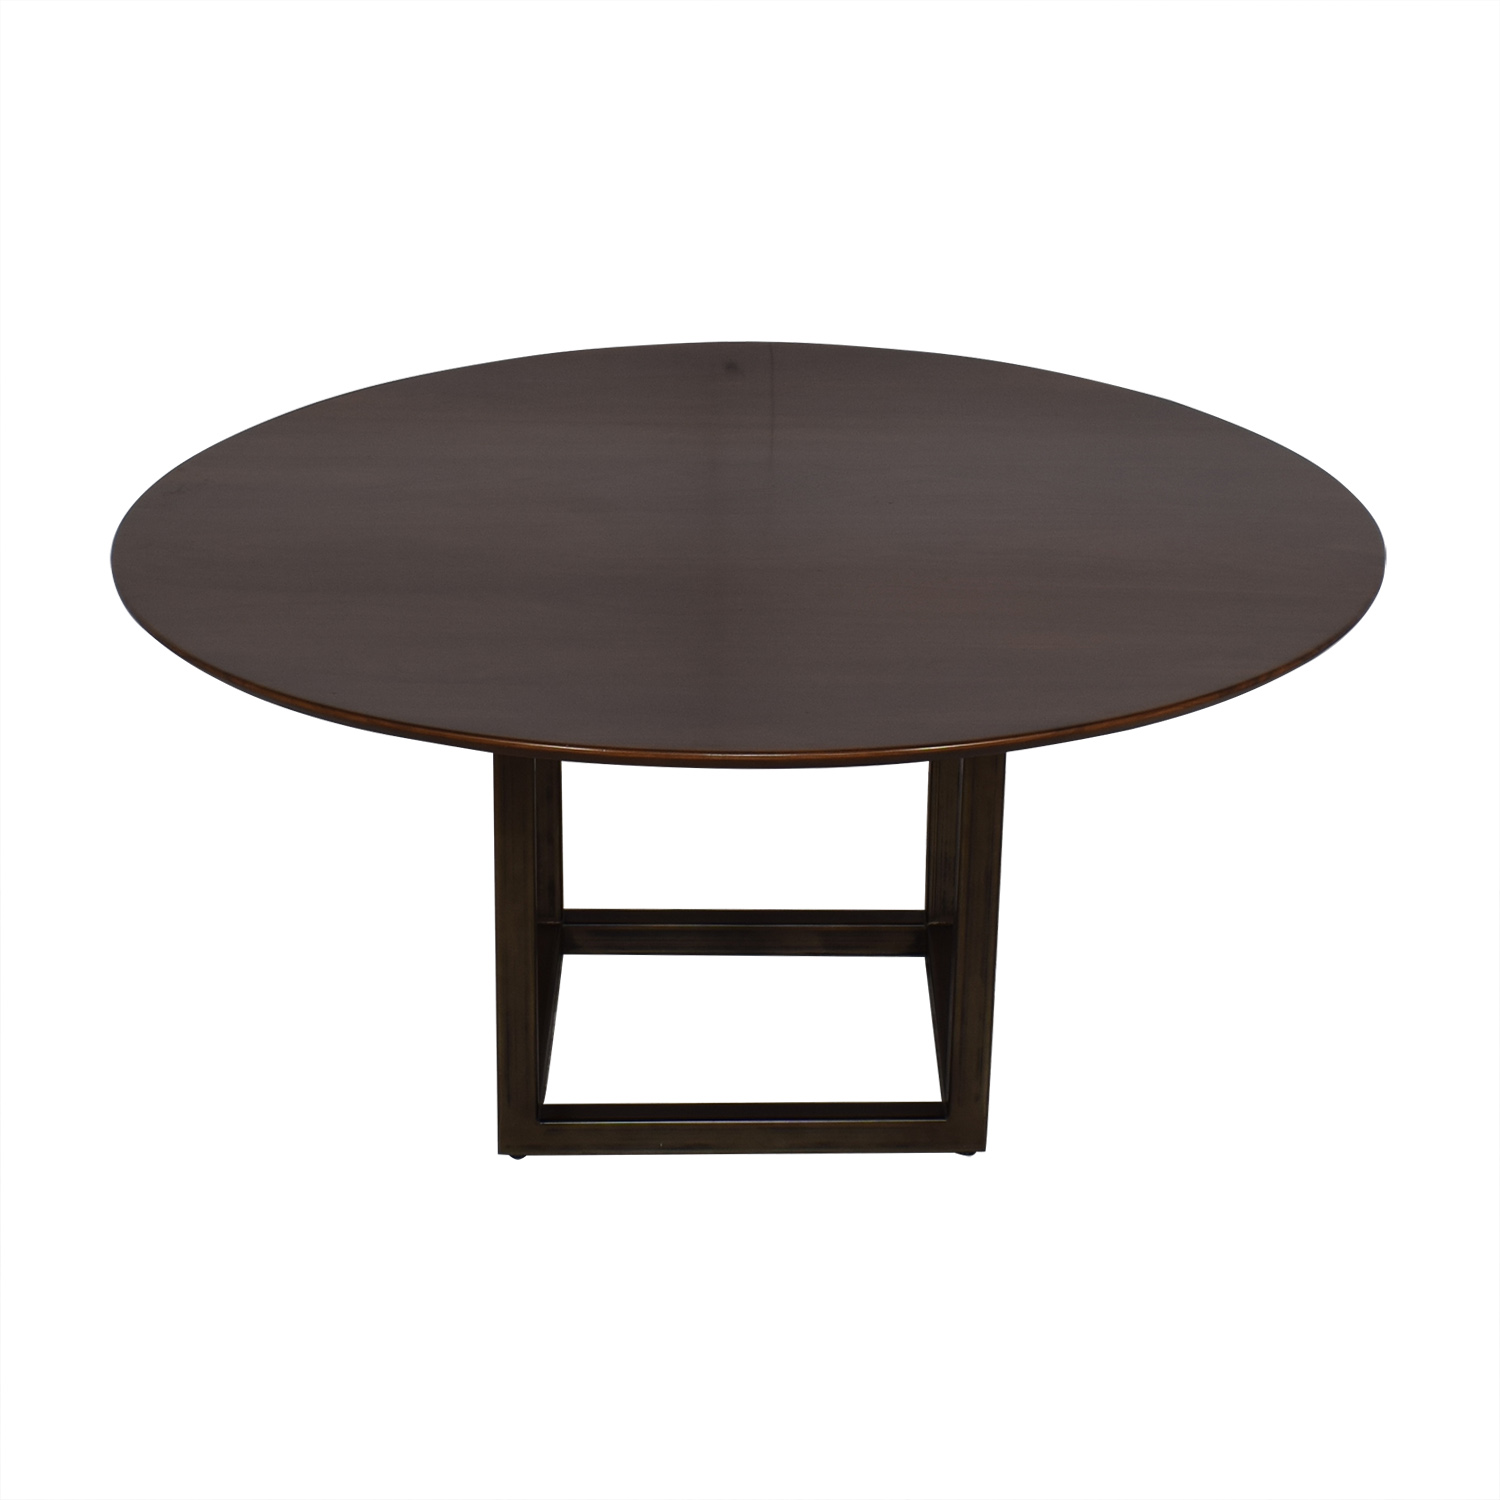 Modern Round Dining Table price